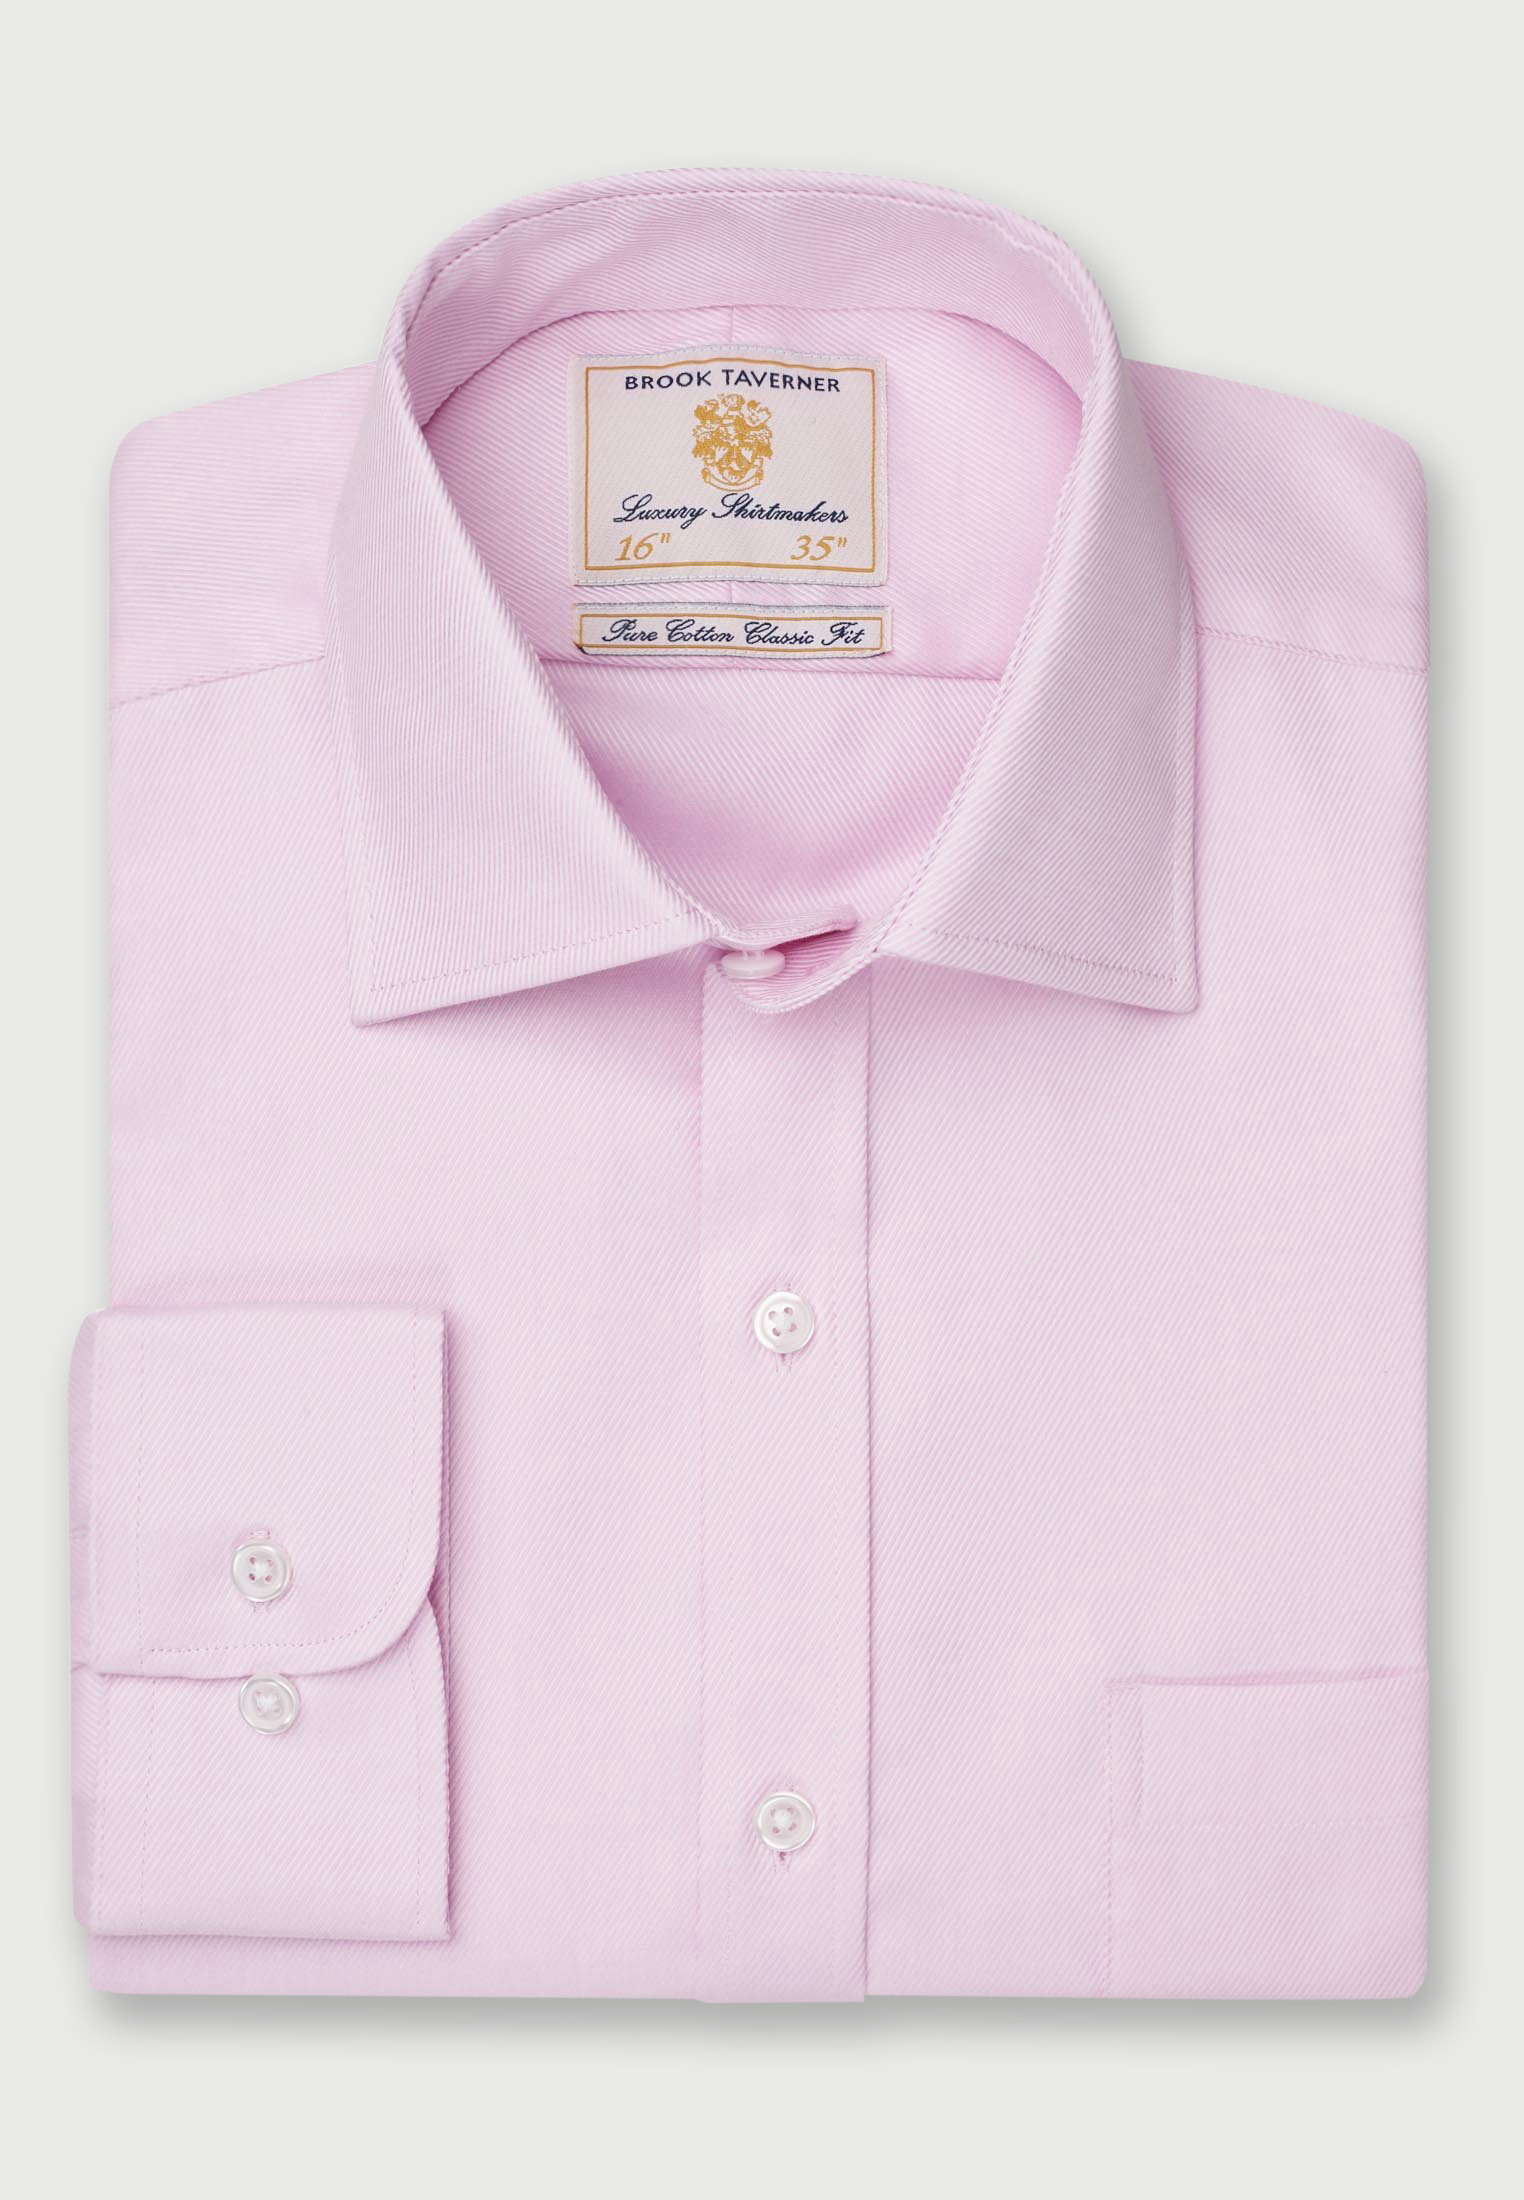 Single and Double Cuff Pink Royal Twill 100% Easycare Cotton Shirt